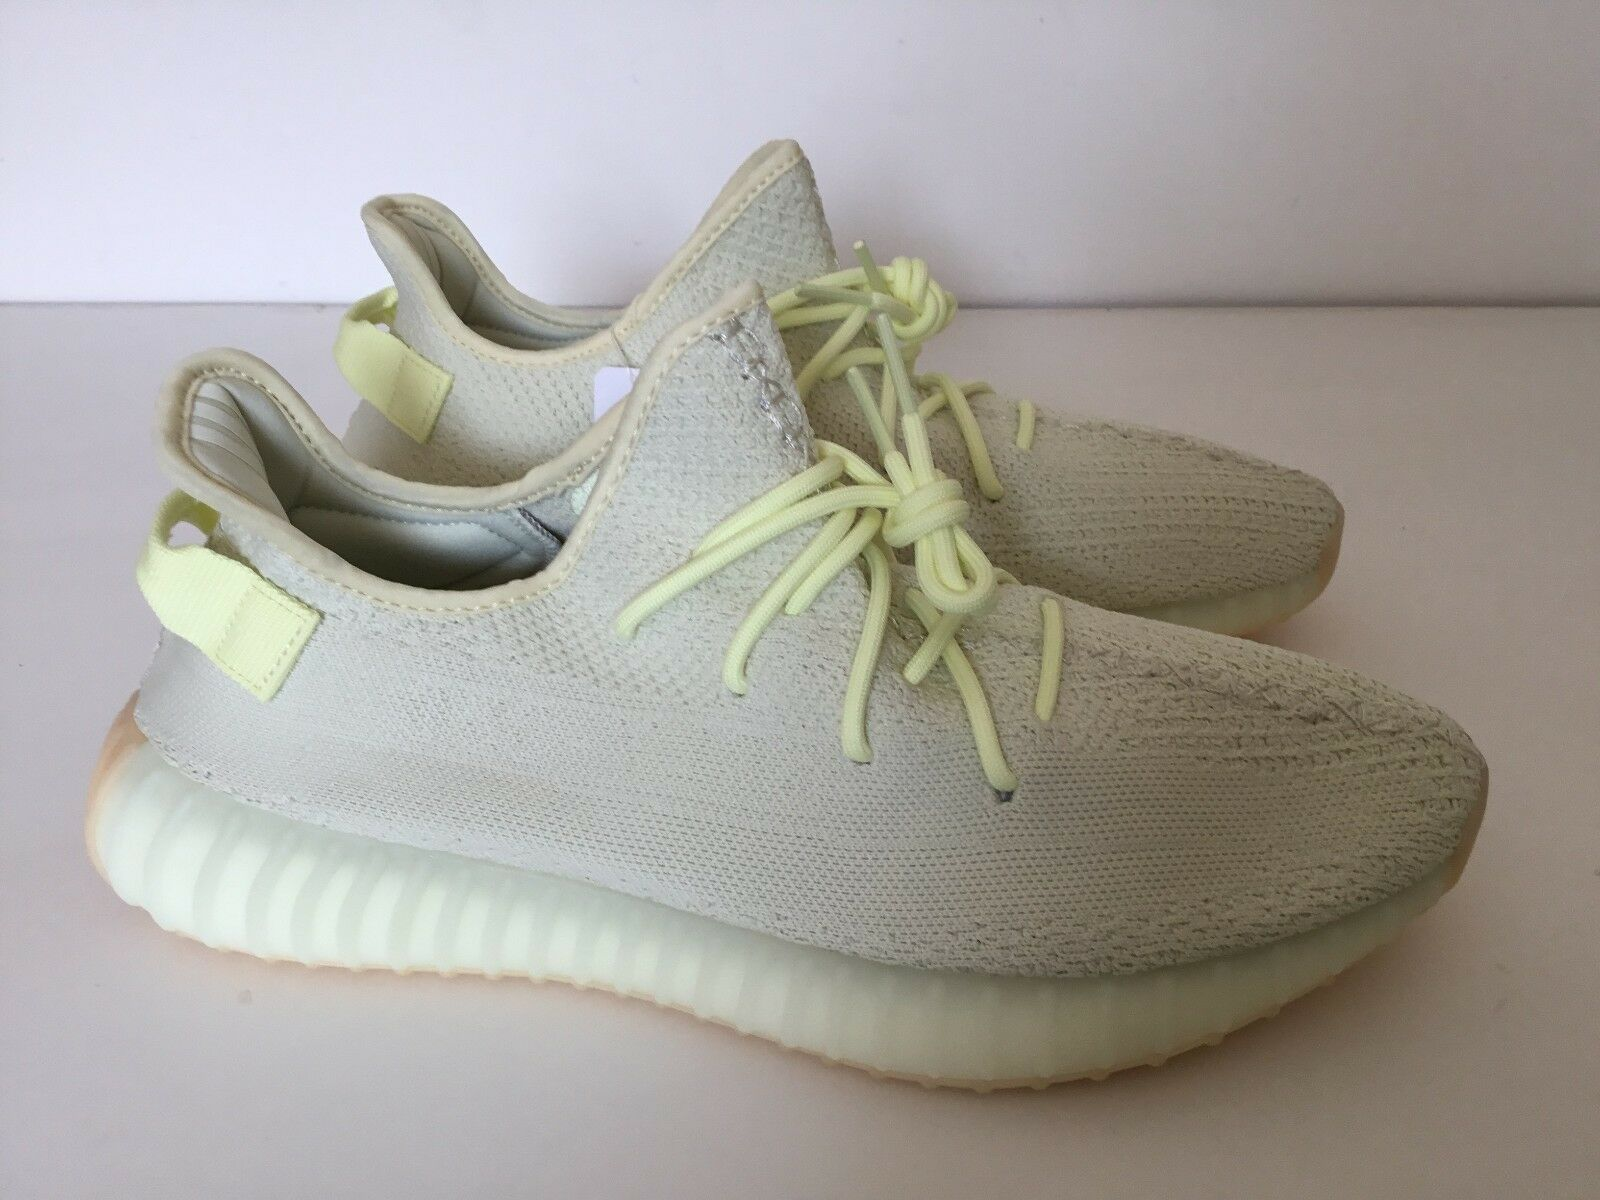 Adidas Yeezy Boost 350 V2 Kanye Butter F36980 men's shoes sneaker Price reduction